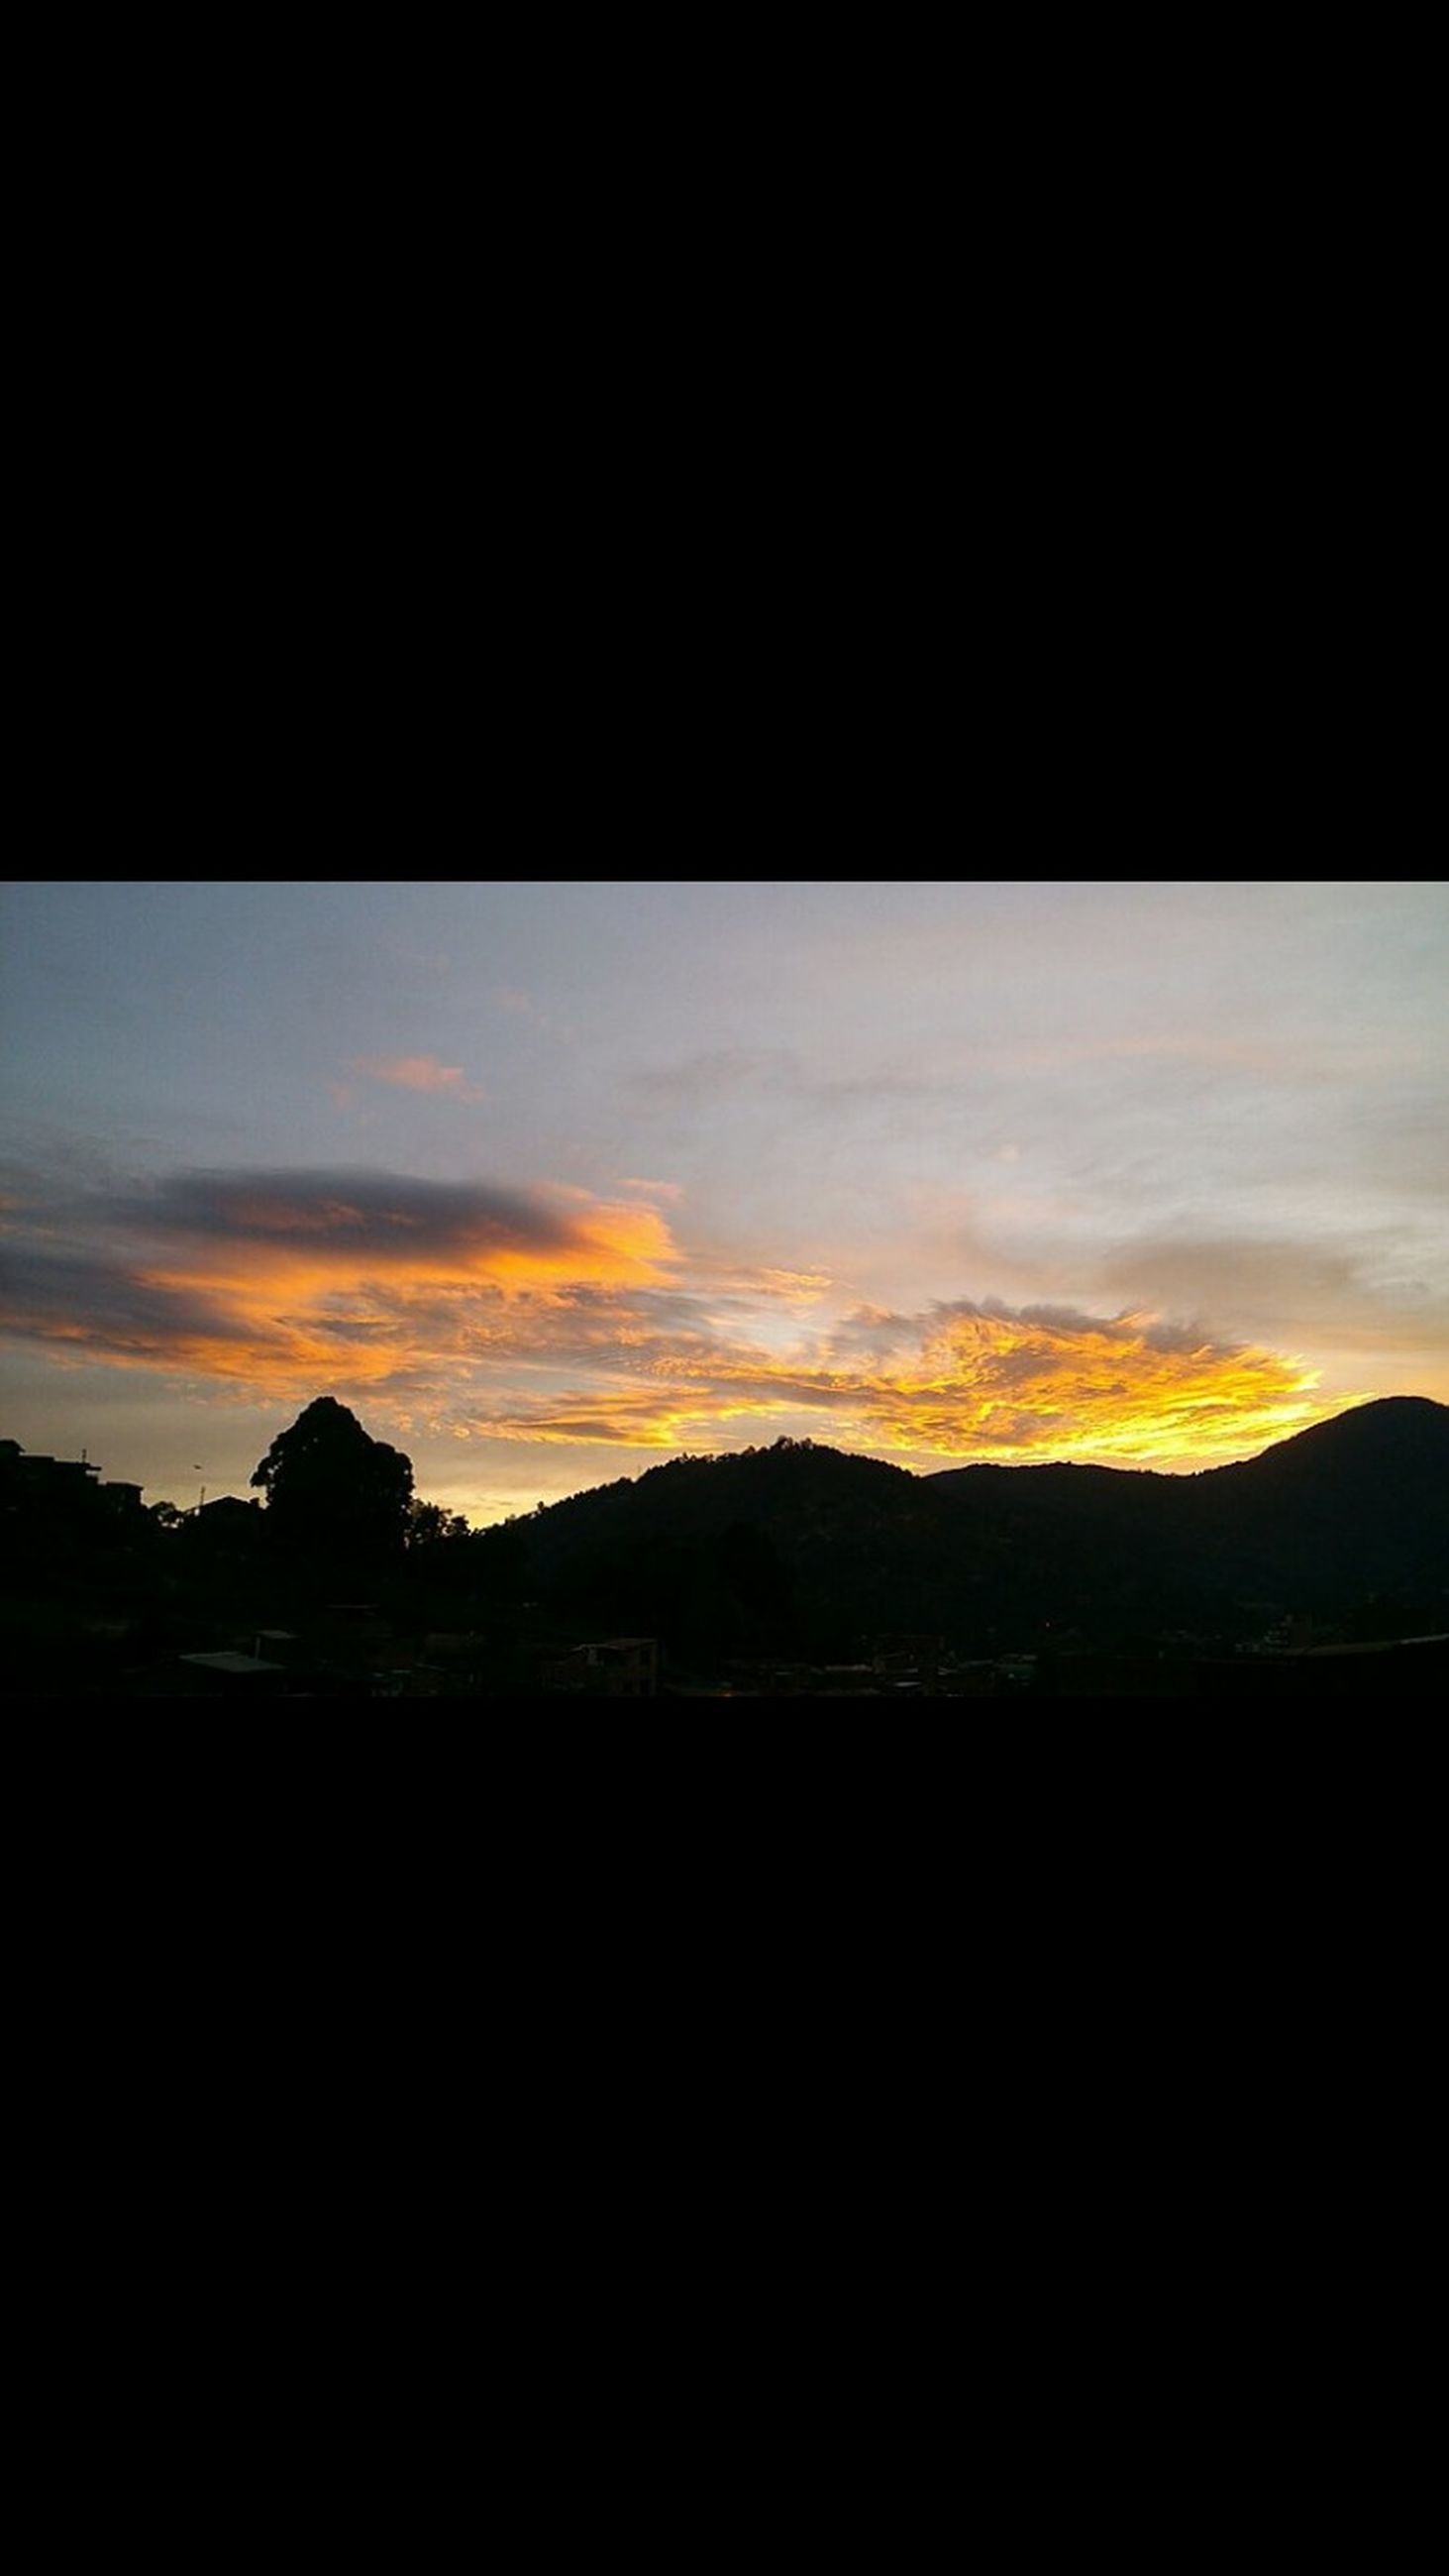 silhouette, sunset, scenics, sky, dark, tranquil scene, beauty in nature, tranquility, copy space, nature, landscape, orange color, idyllic, cloud - sky, dusk, mountain, cloud, no people, outline, outdoors